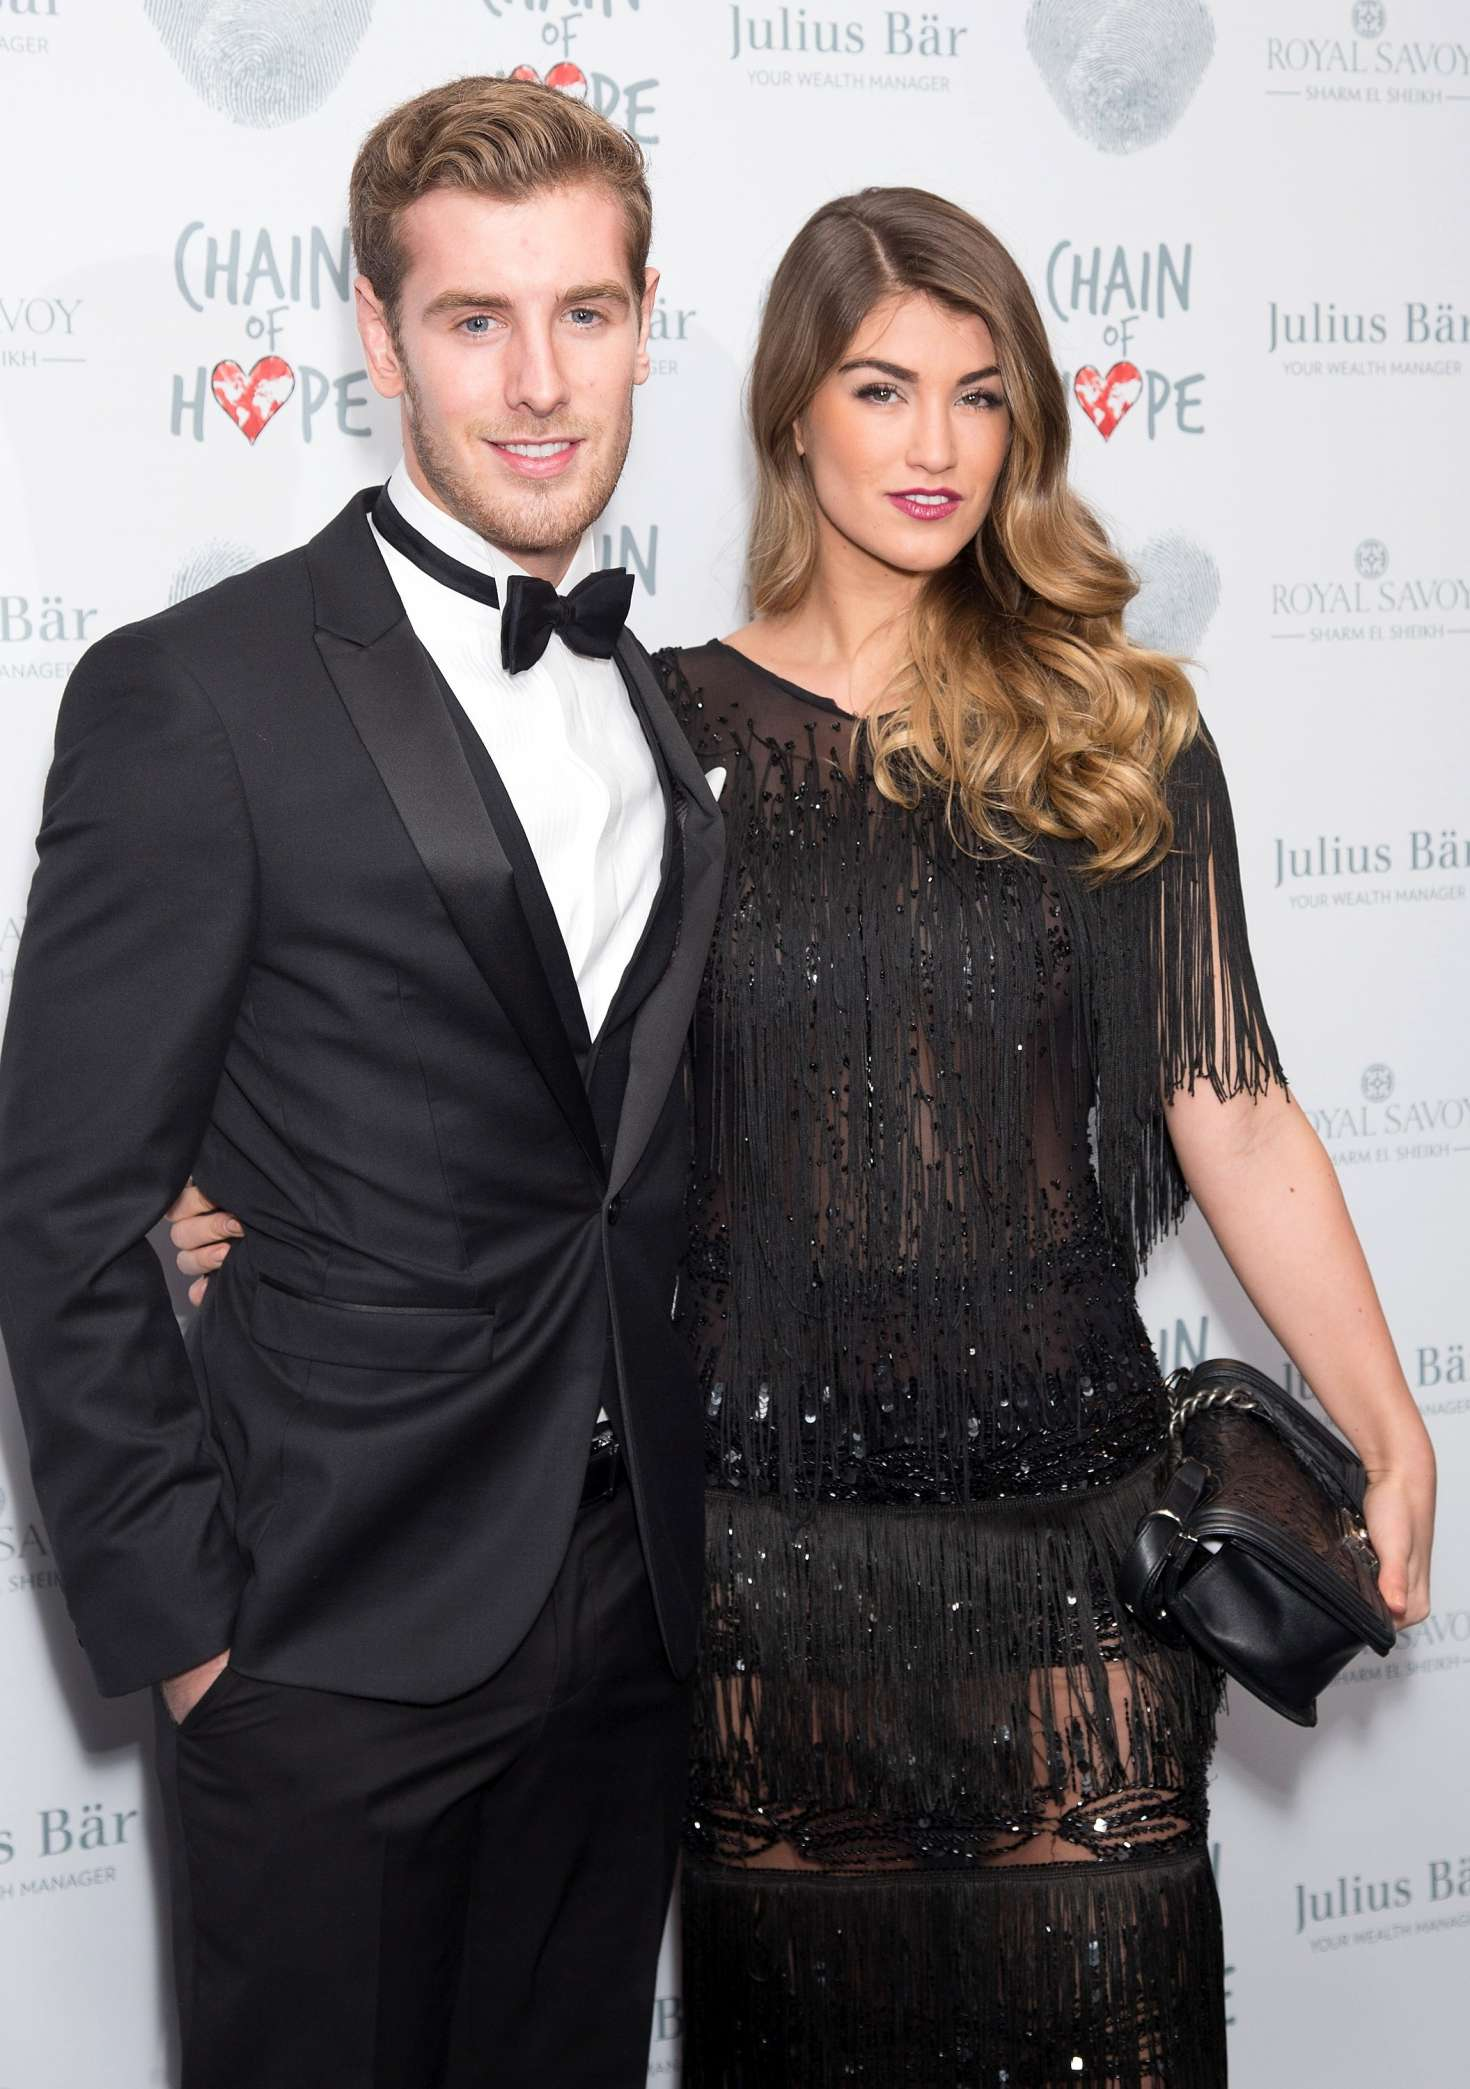 Amy Willerton 2016 : Amy Willerton: Chain Of Hope Annual Gala Ball 2016 -18